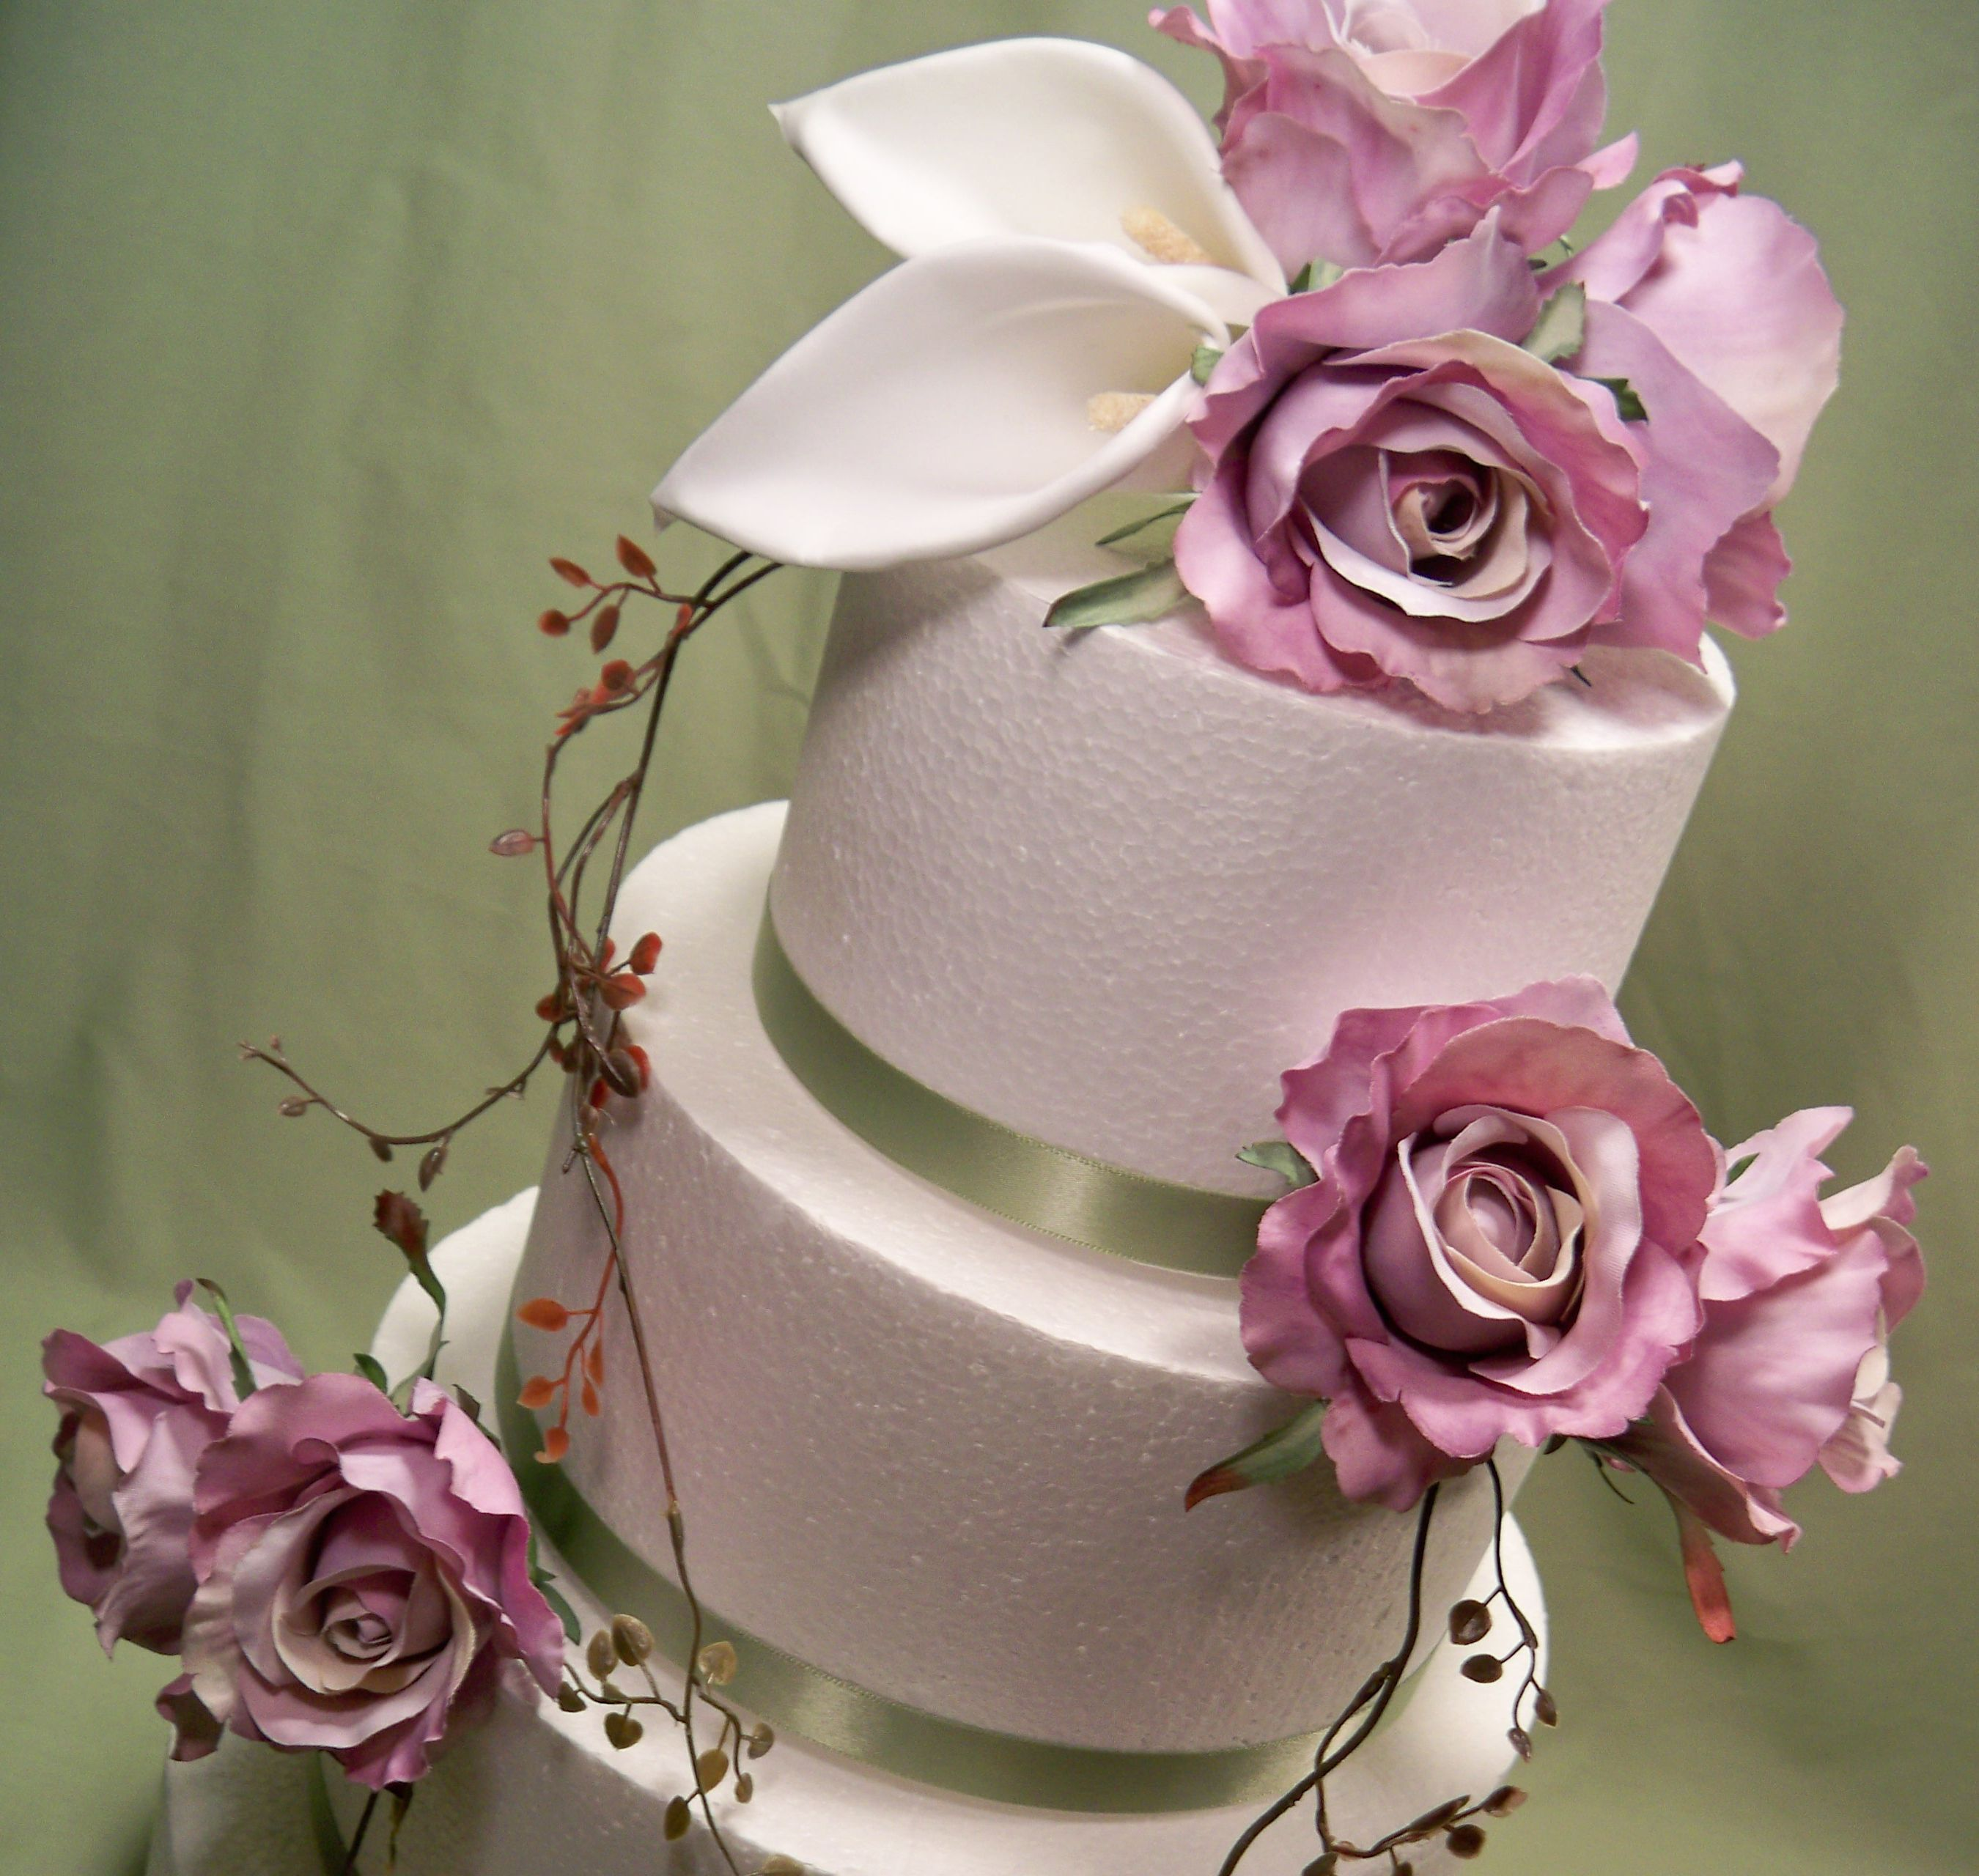 Lavender Rose and White Calla Lily Silk Flower Wedding Cake Topper